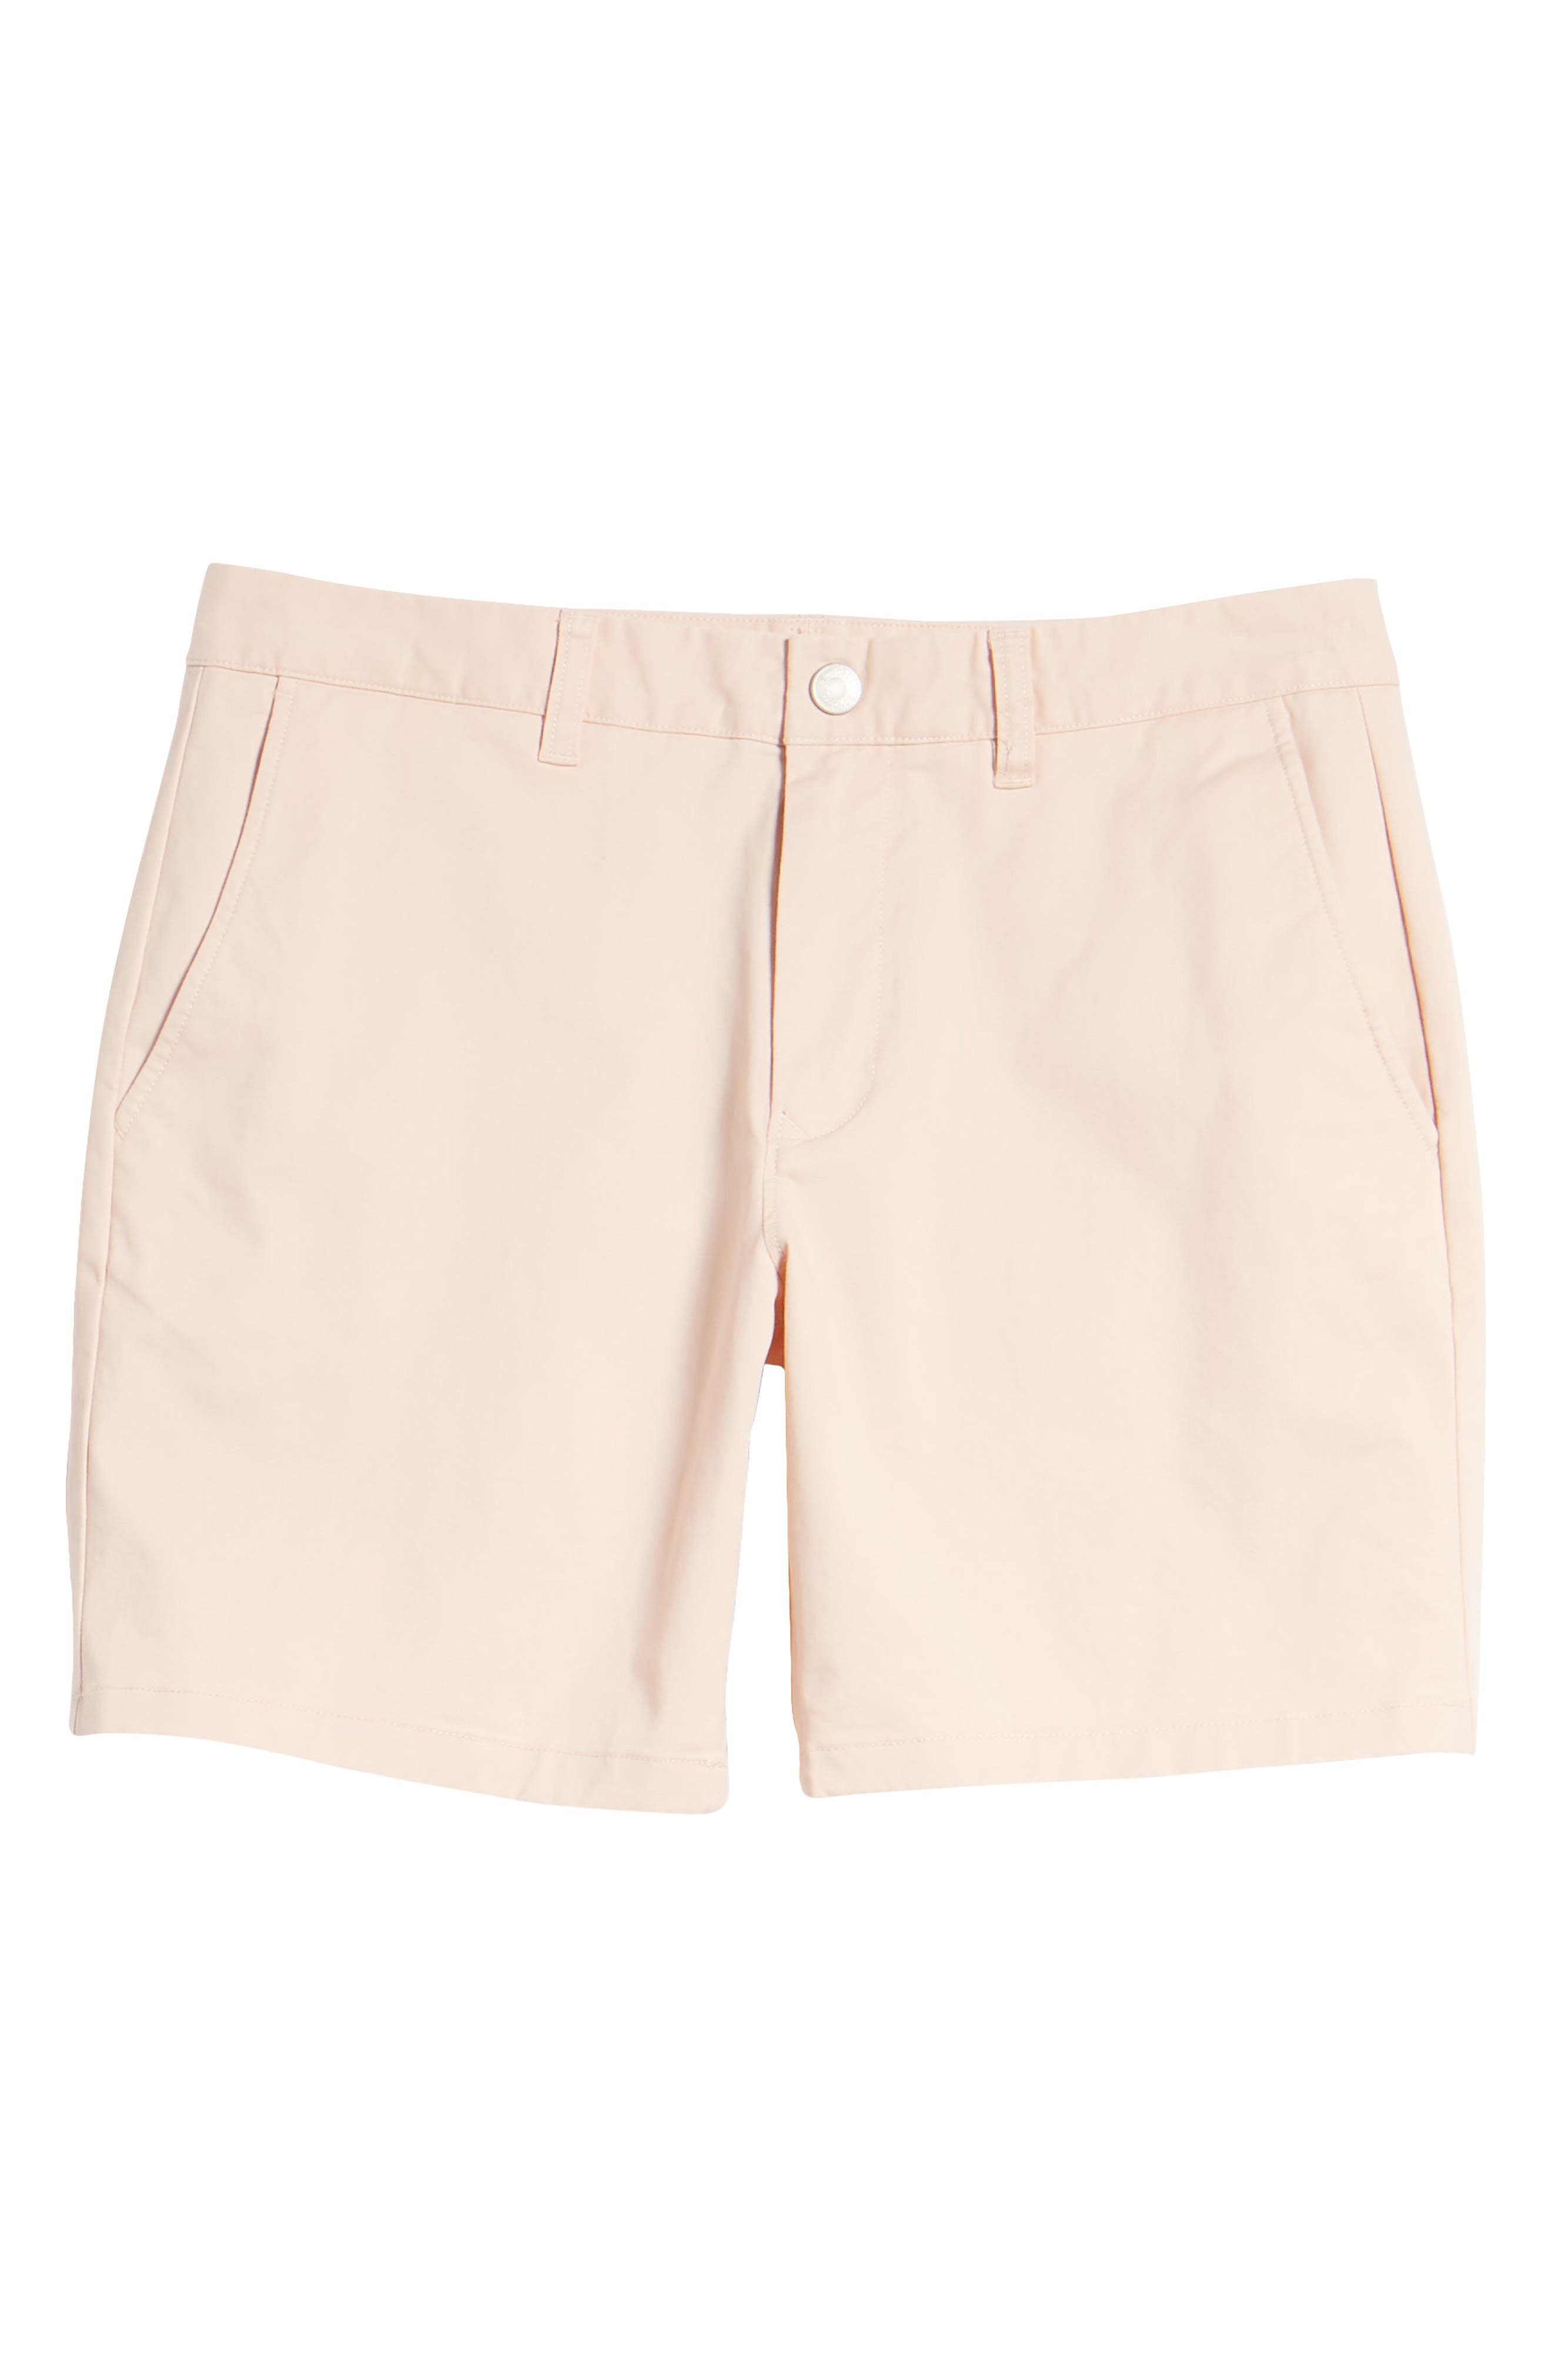 Stretch Washed Chino 7-Inch Shorts,                             Alternate thumbnail 118, color,